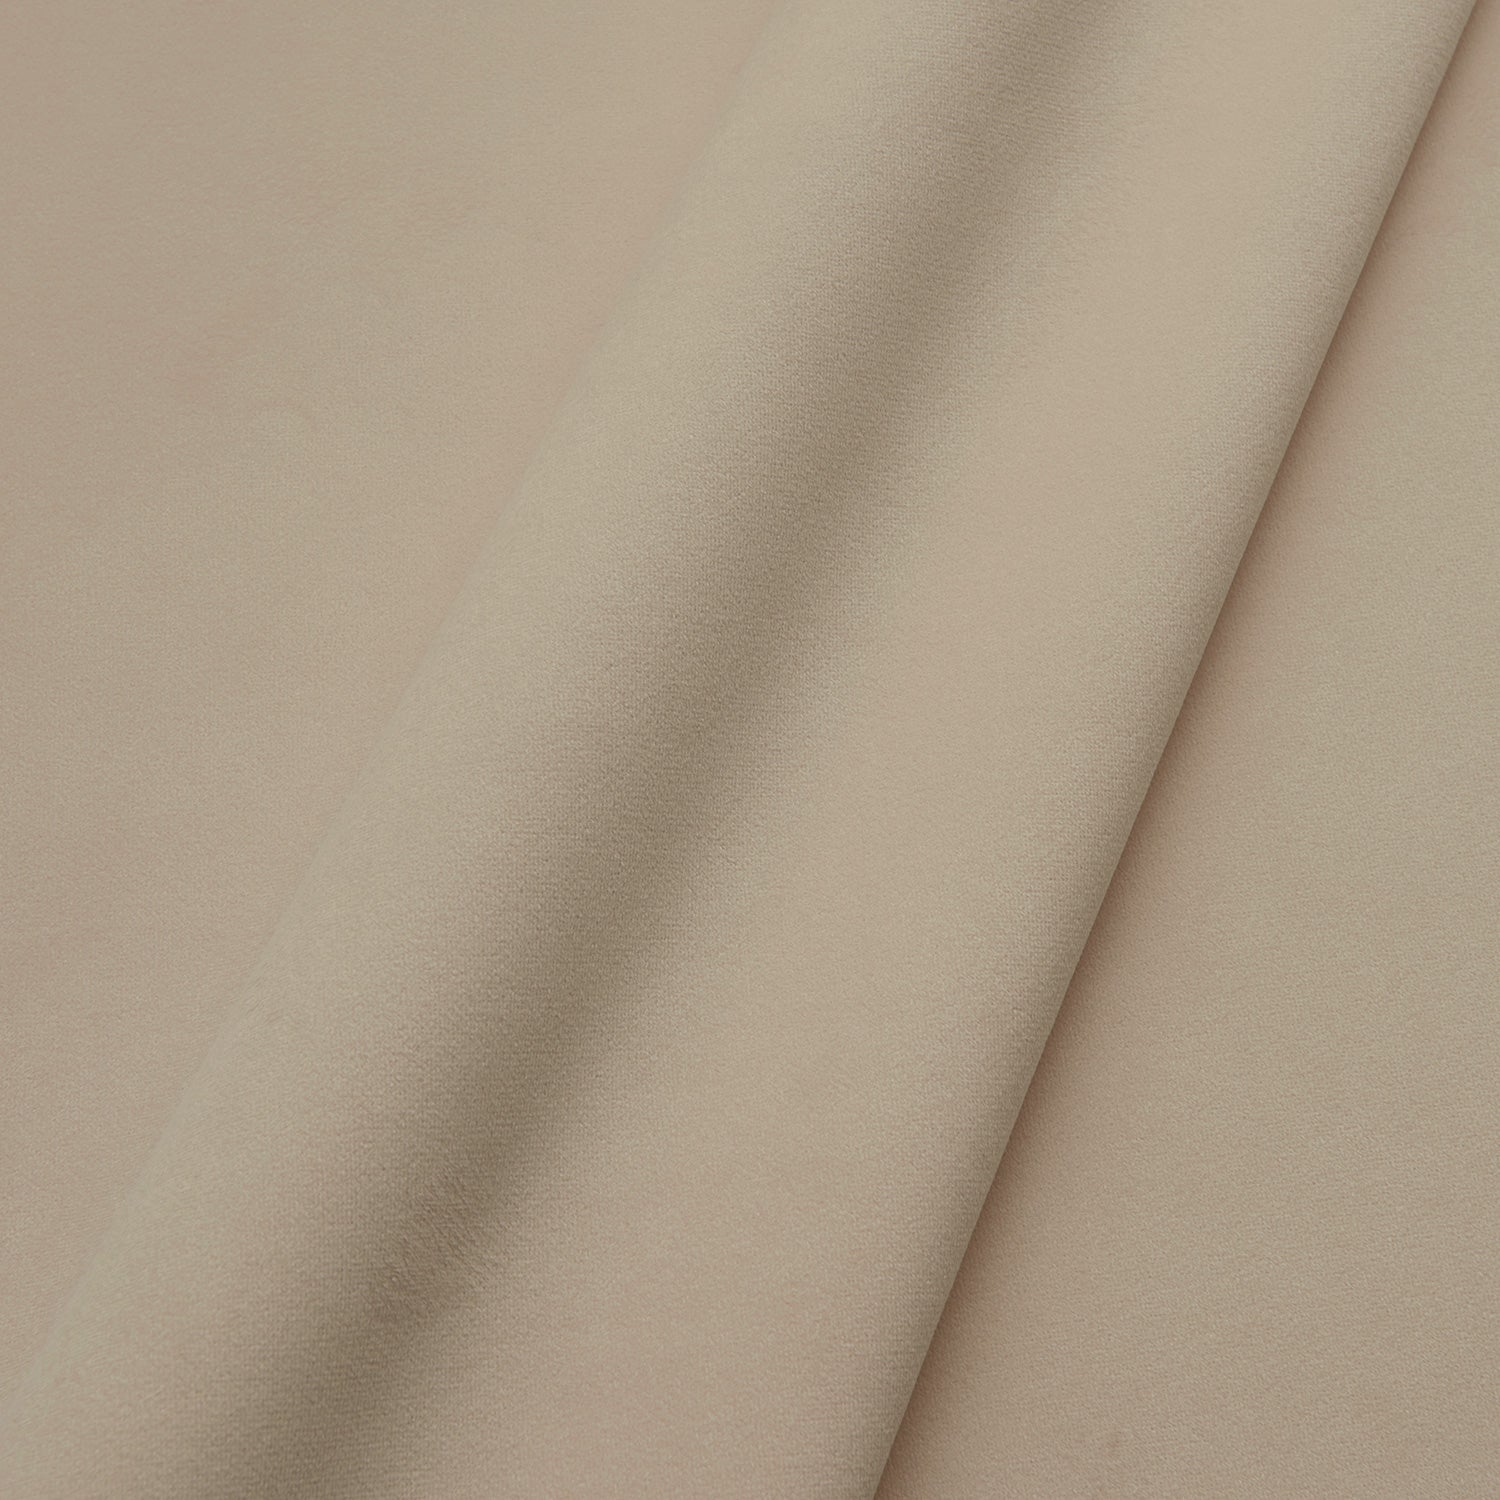 Fabric swatch of a plain stain resistant velvet upholstery fabric in neutral colour